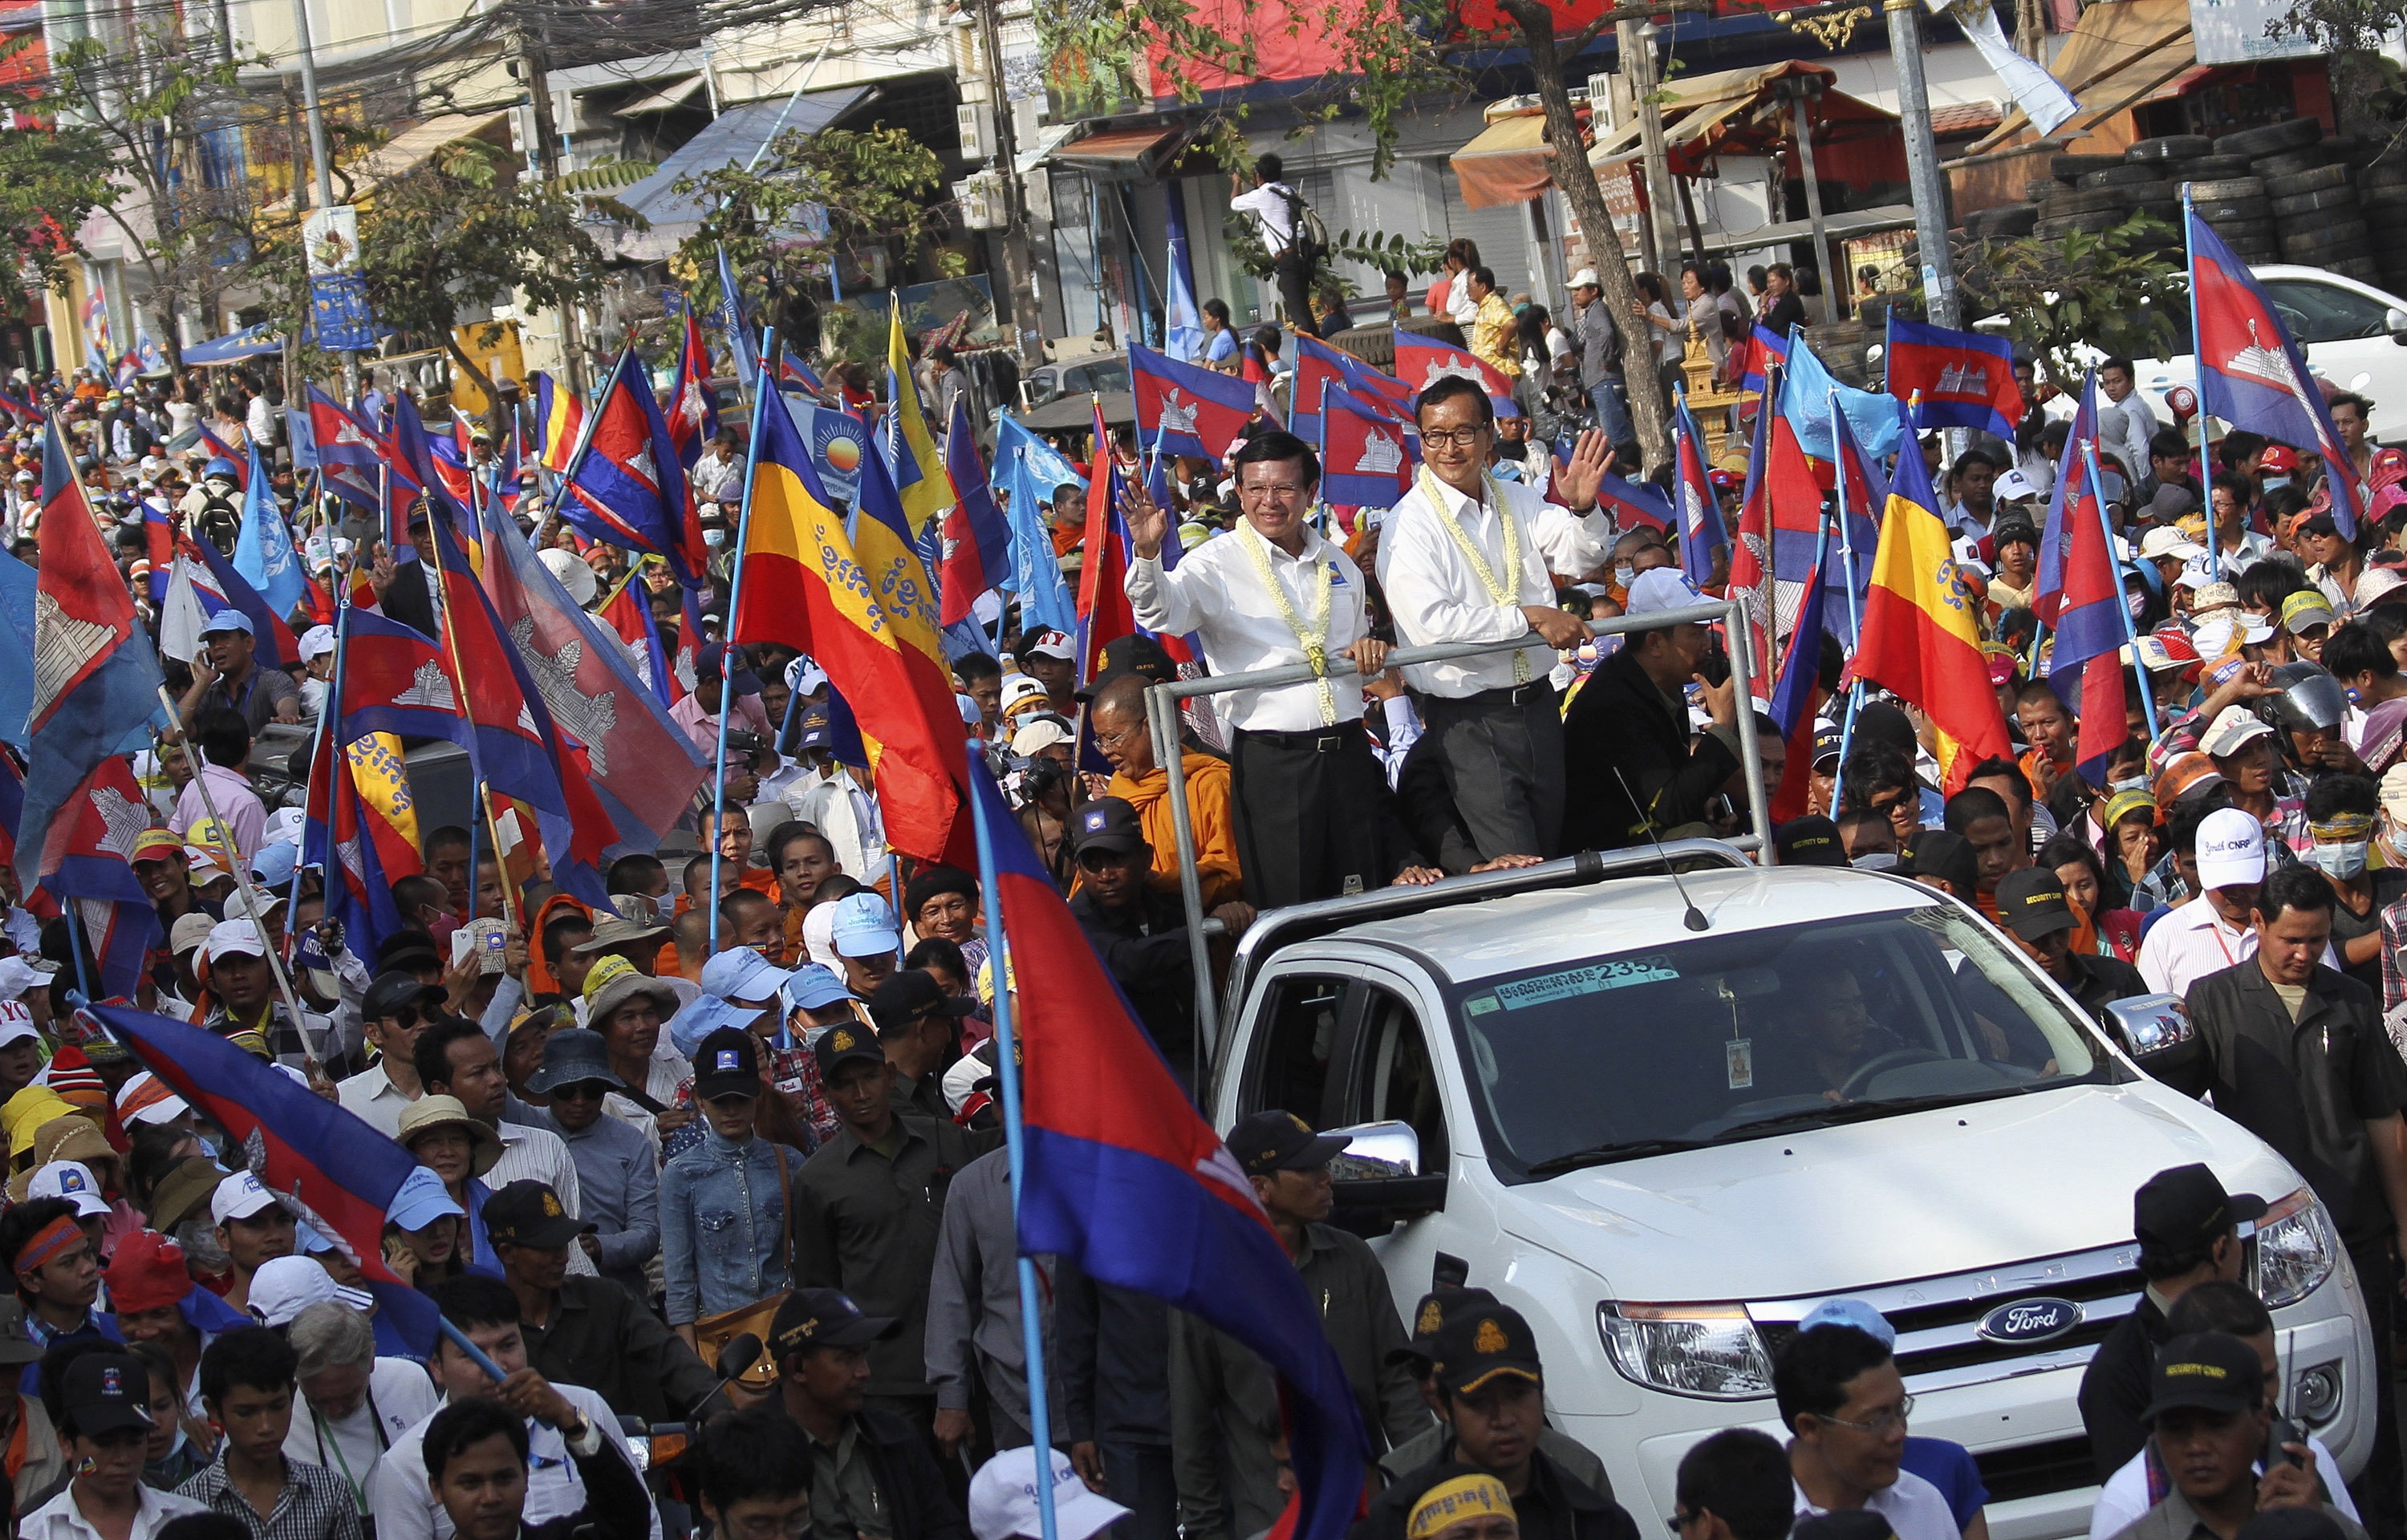 Sam Rainsy president of the opposition Cambodian National Rescue Party (CNRP) and party vice-president Kem Sokha, greet supporters during a protest in Phnom Penh Dec. 29, 2013.